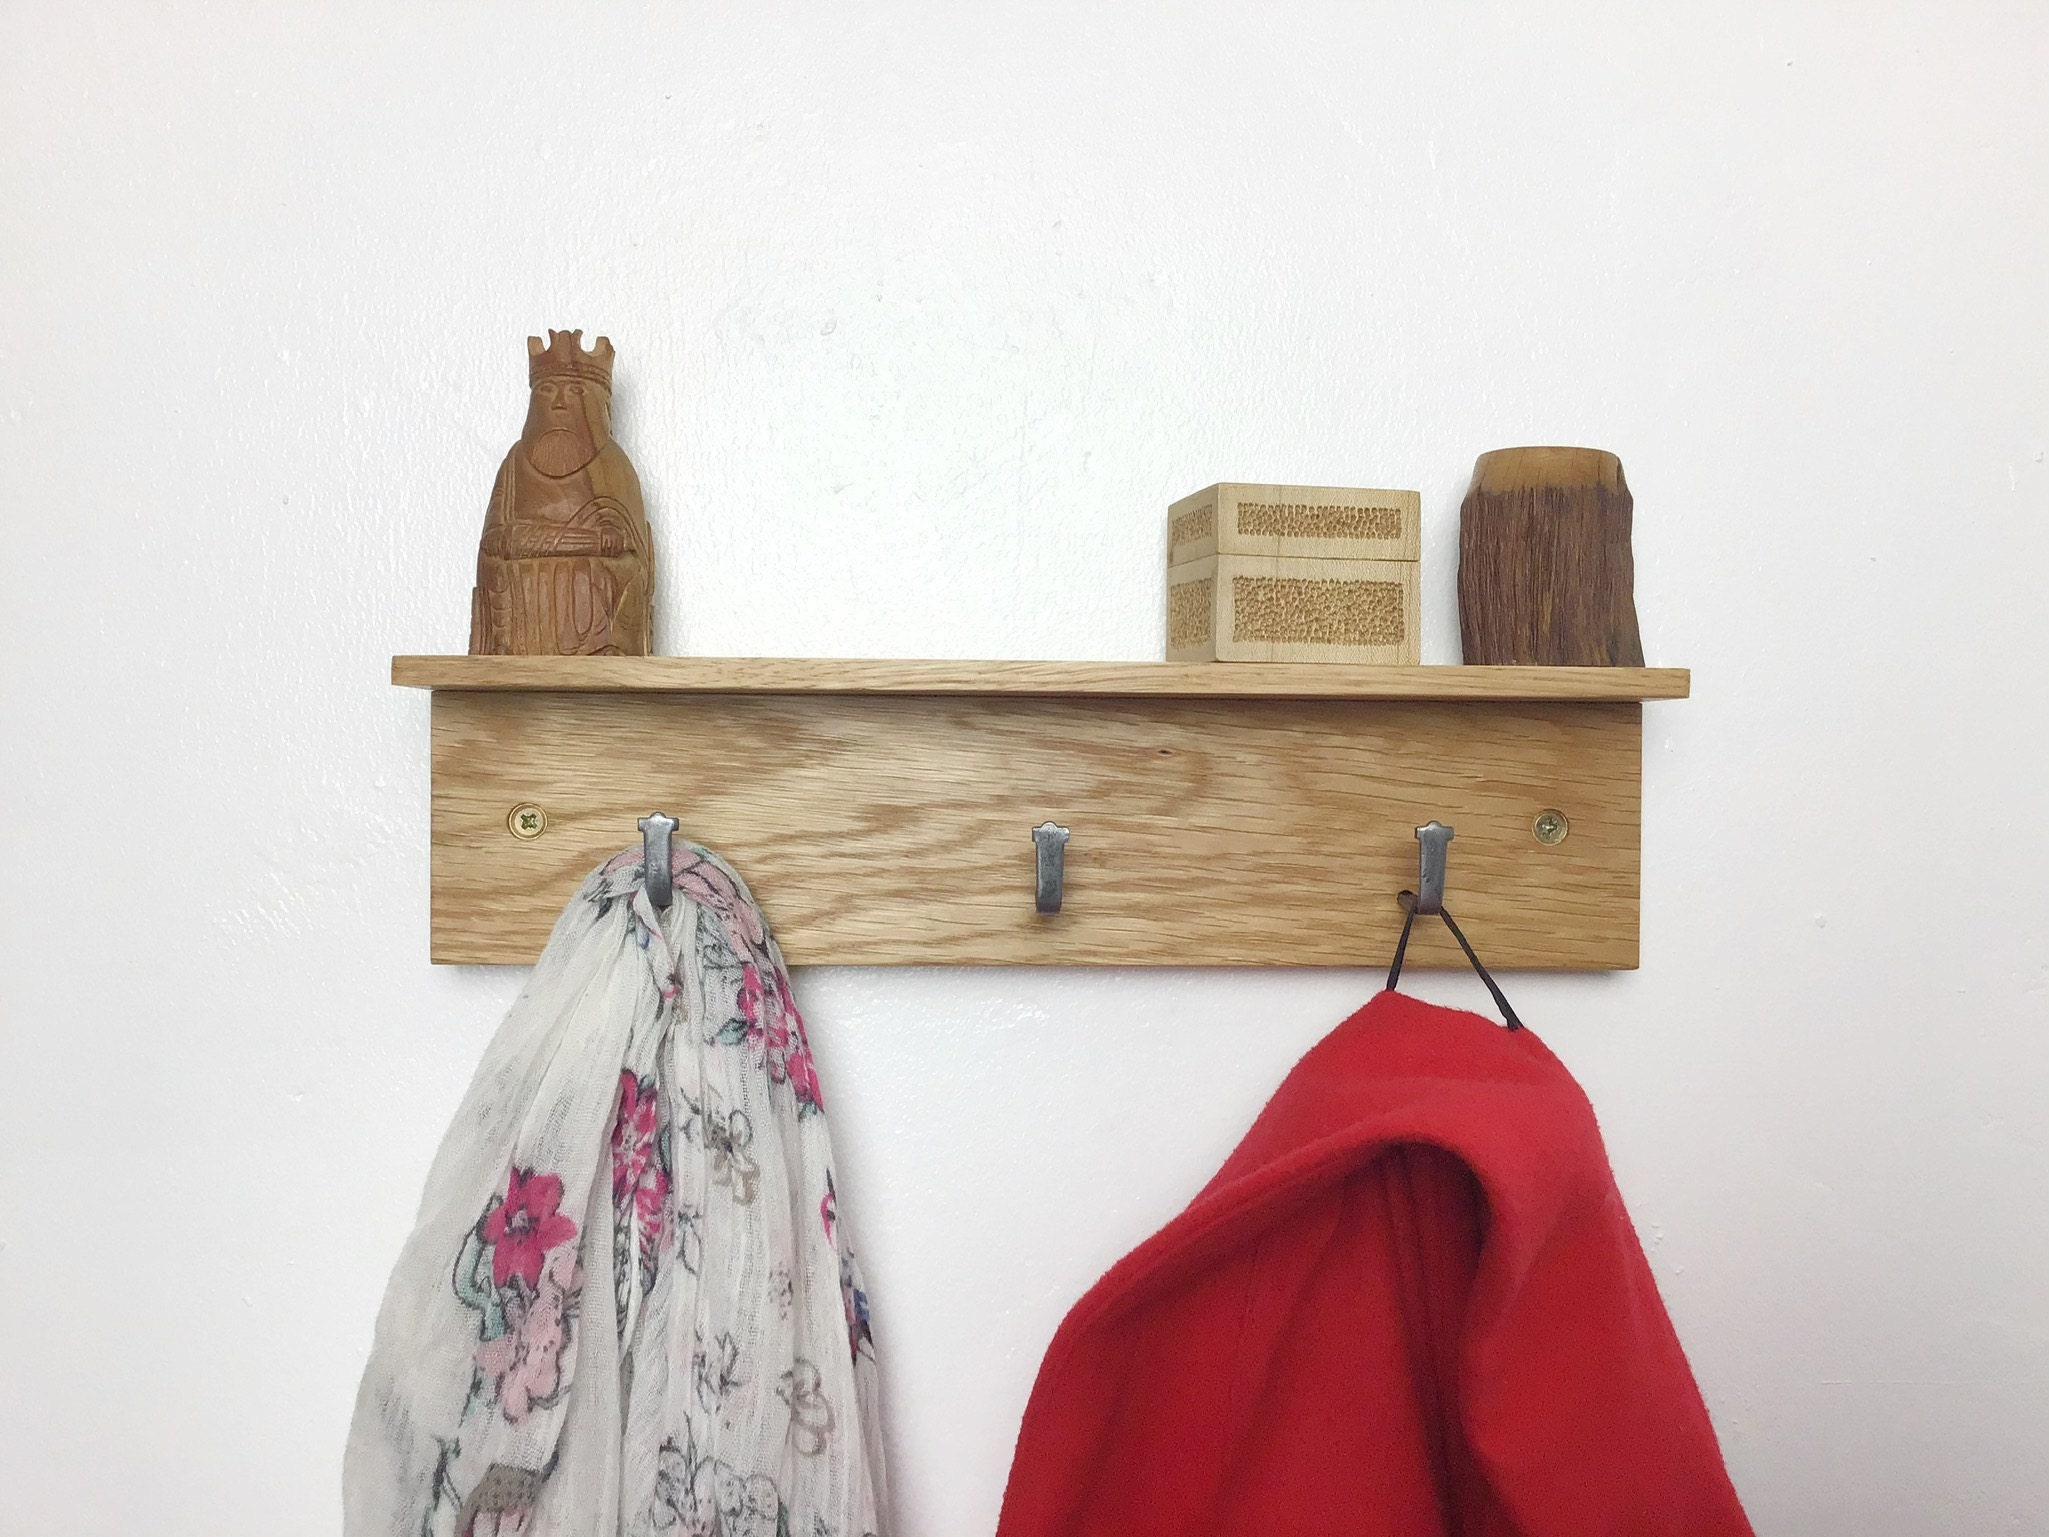 solid Oak wood 3 hook Coat Rack 33cm wide - gorlech UK